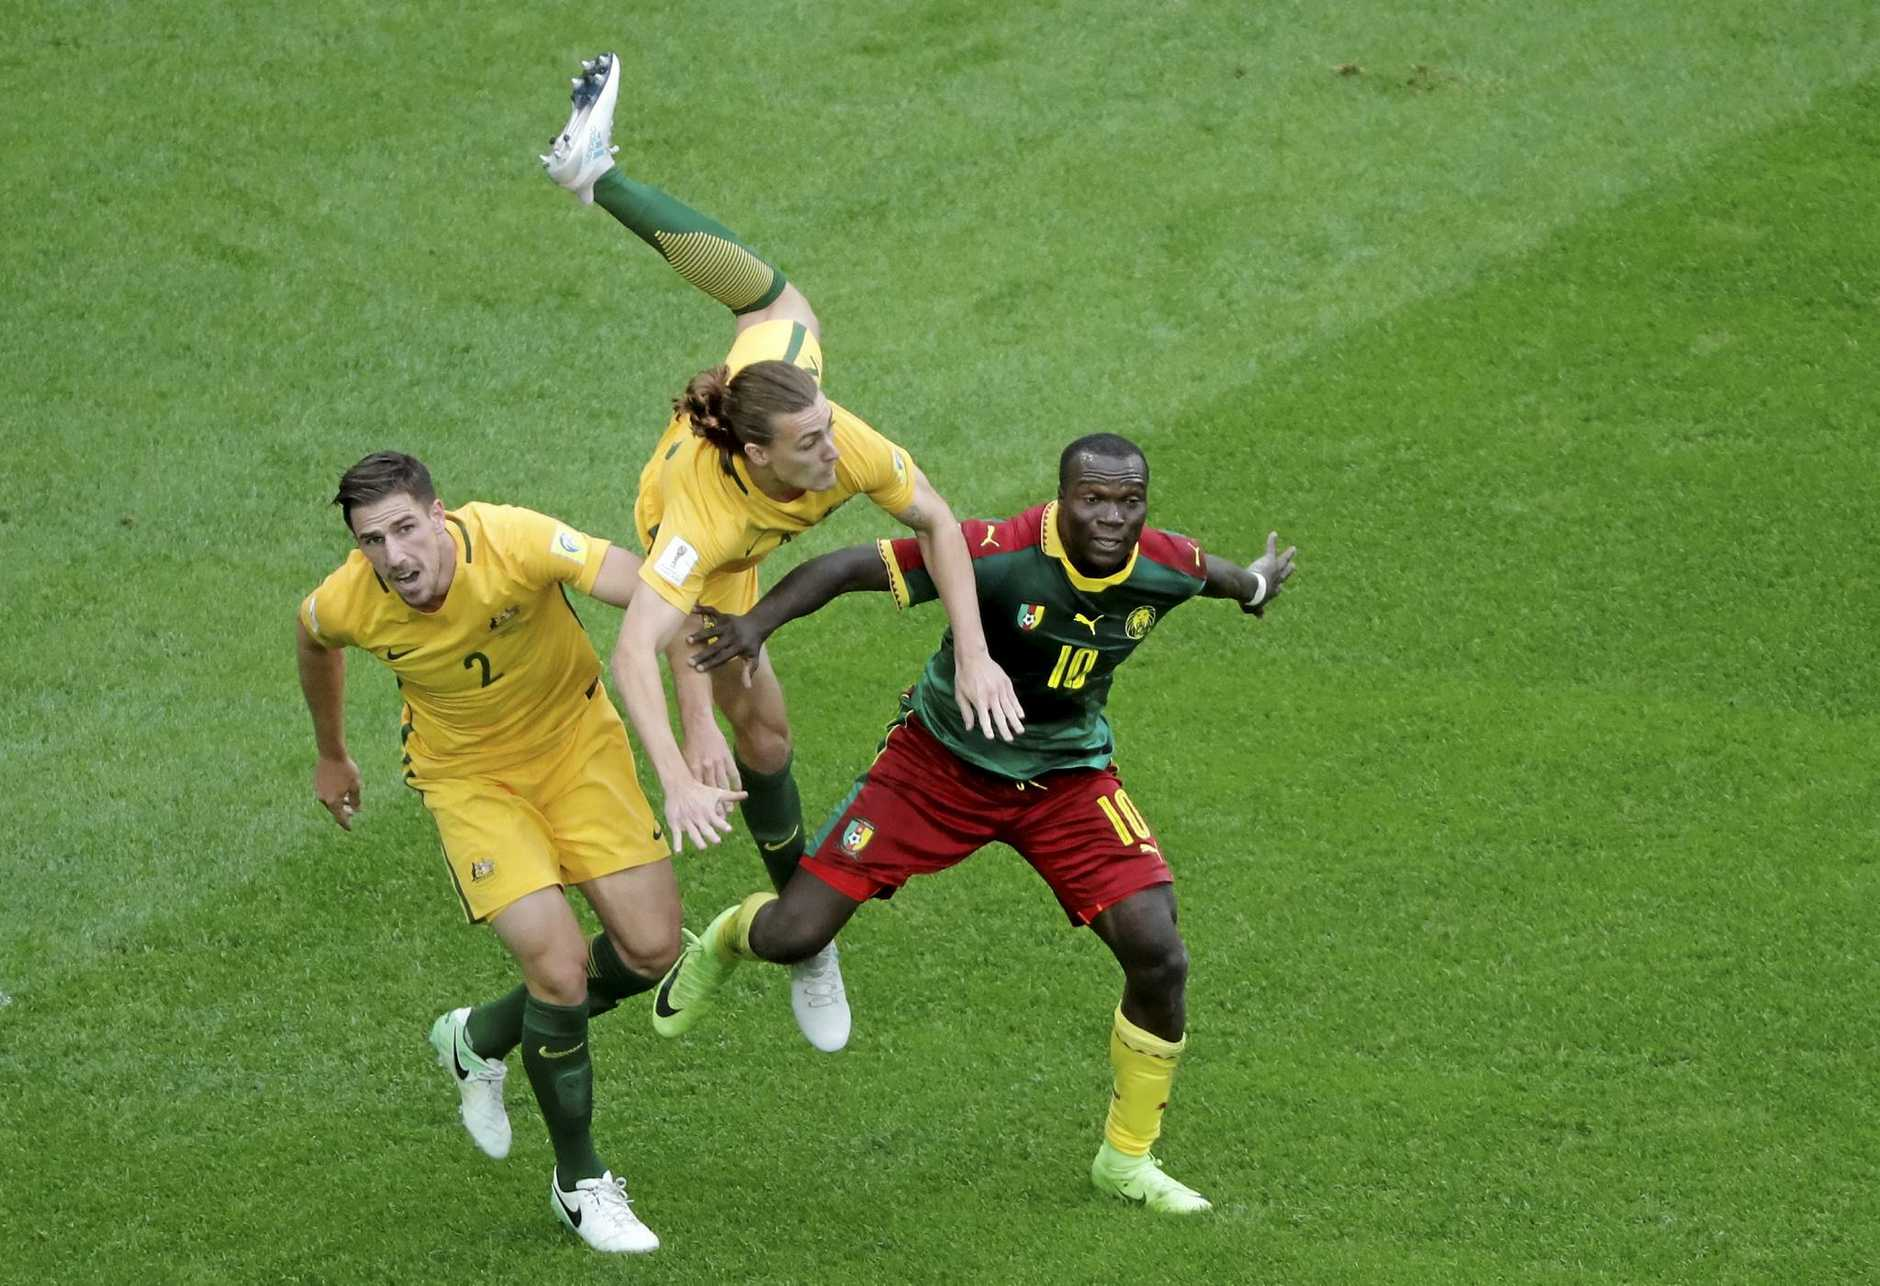 Australia's Jackson Irvine falls between teammate Milos Degenek and Cameroon's Vincent Aboubakar.